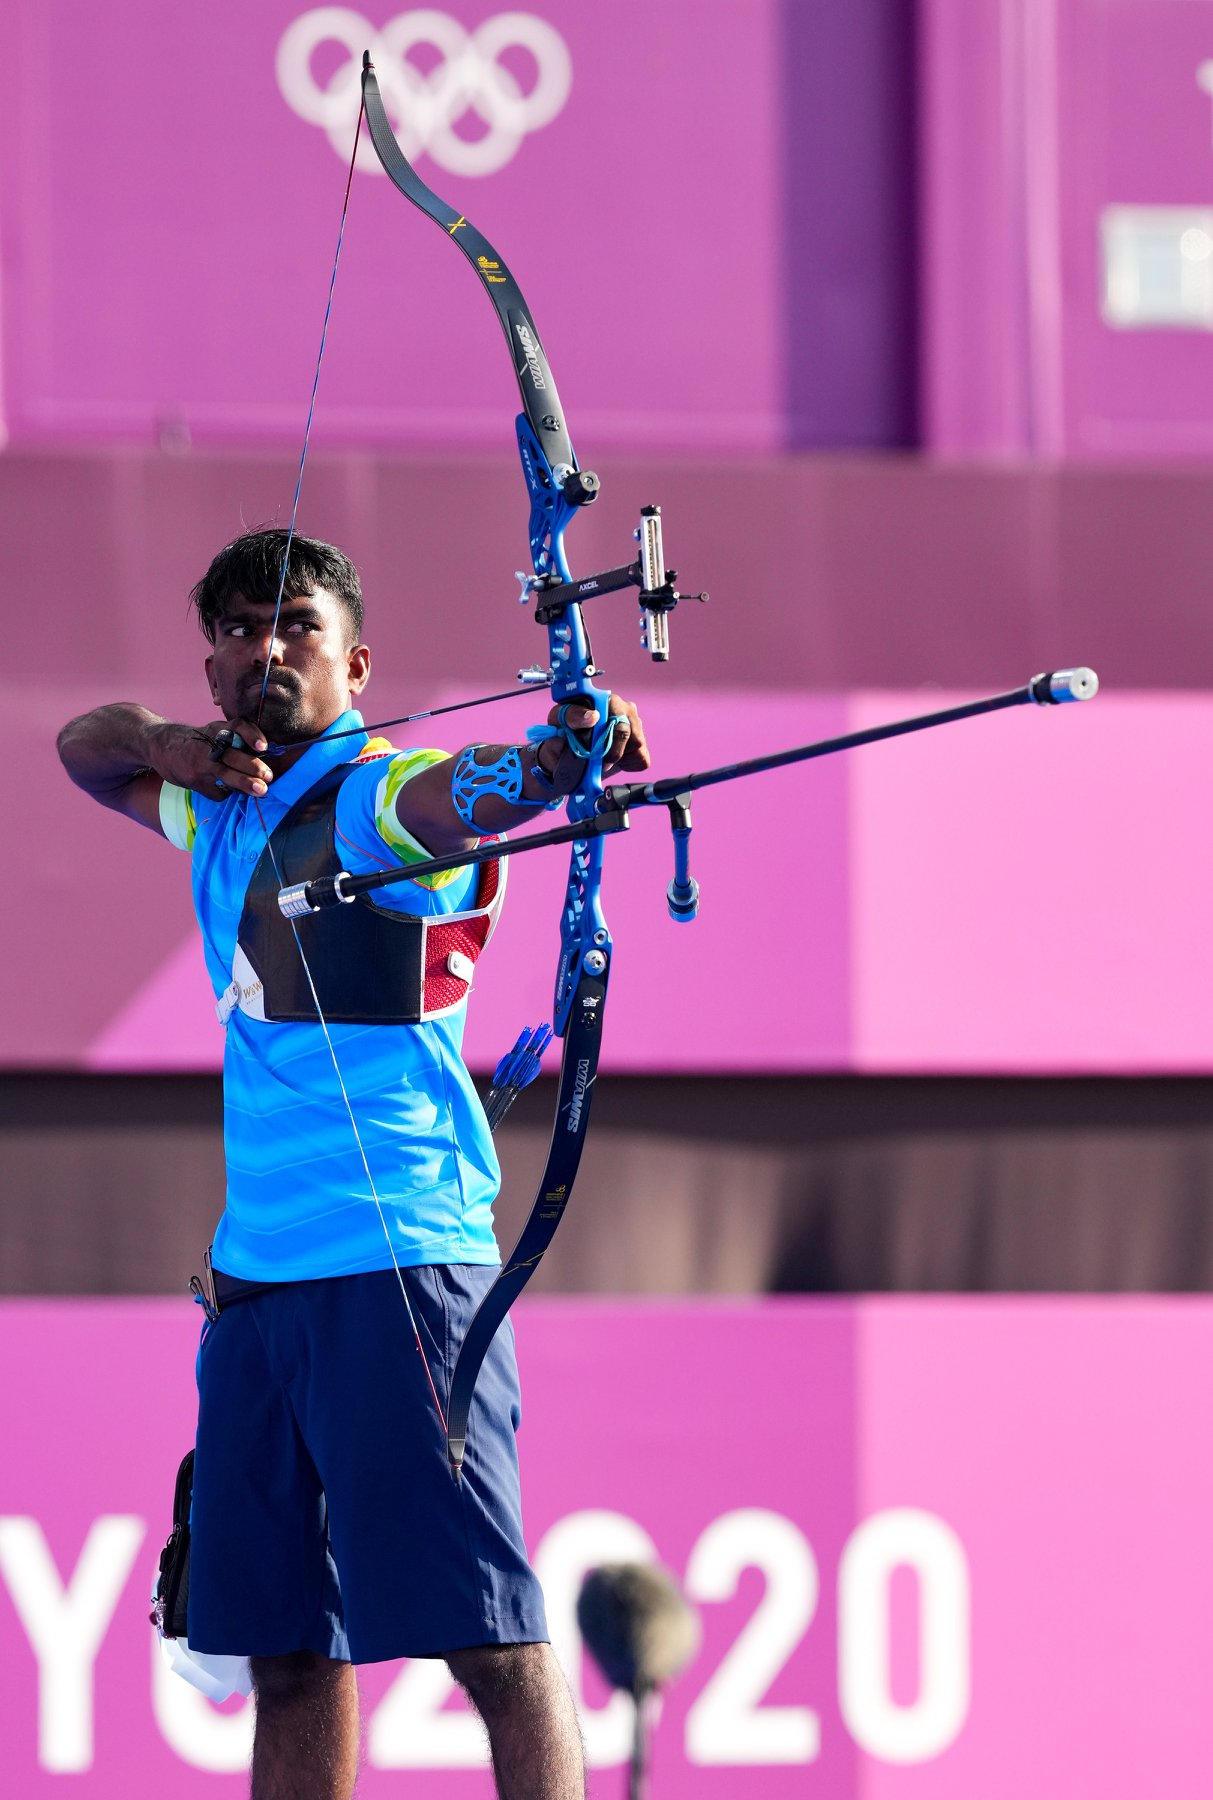 Pravin Jadhav competing in an event